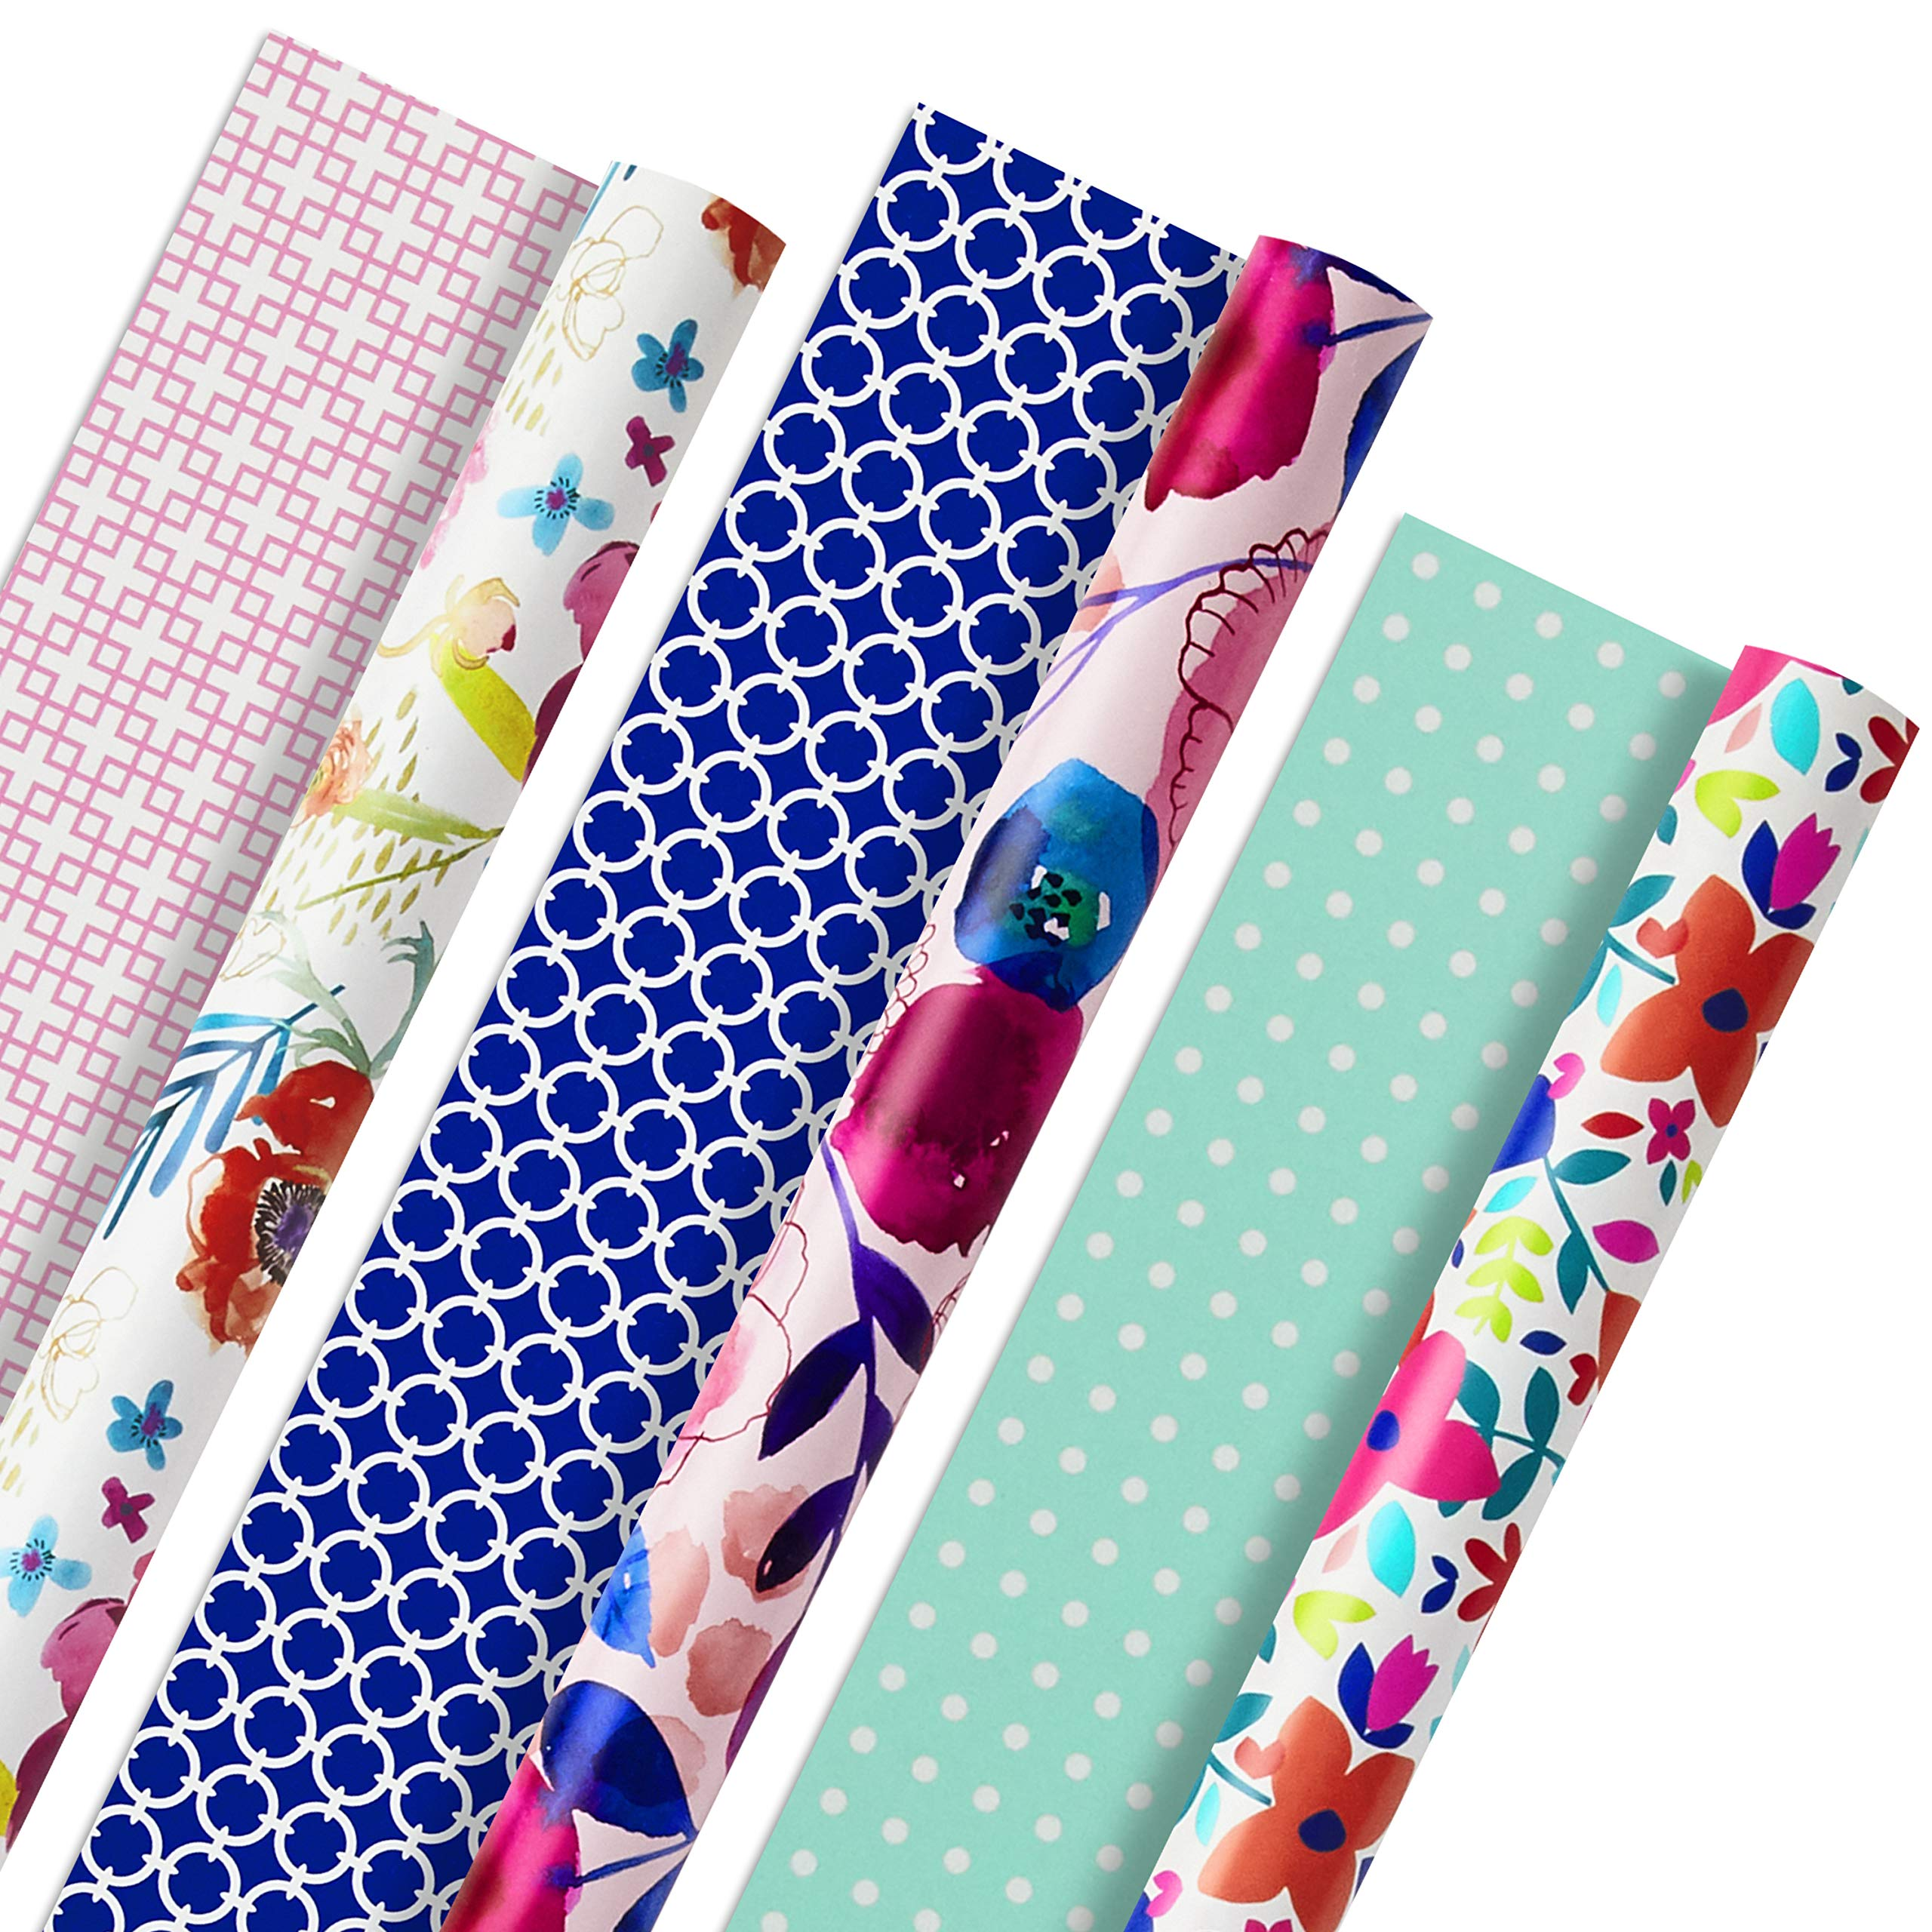 Hallmark All Occasion Reversible Wrapping Paper (Feminine Florals, Pack of 3, 120 sq. ft. ttl.) for Easter, Mothers Day, Birthdays, Bridal Showers, Baby Showers or Any Occasion